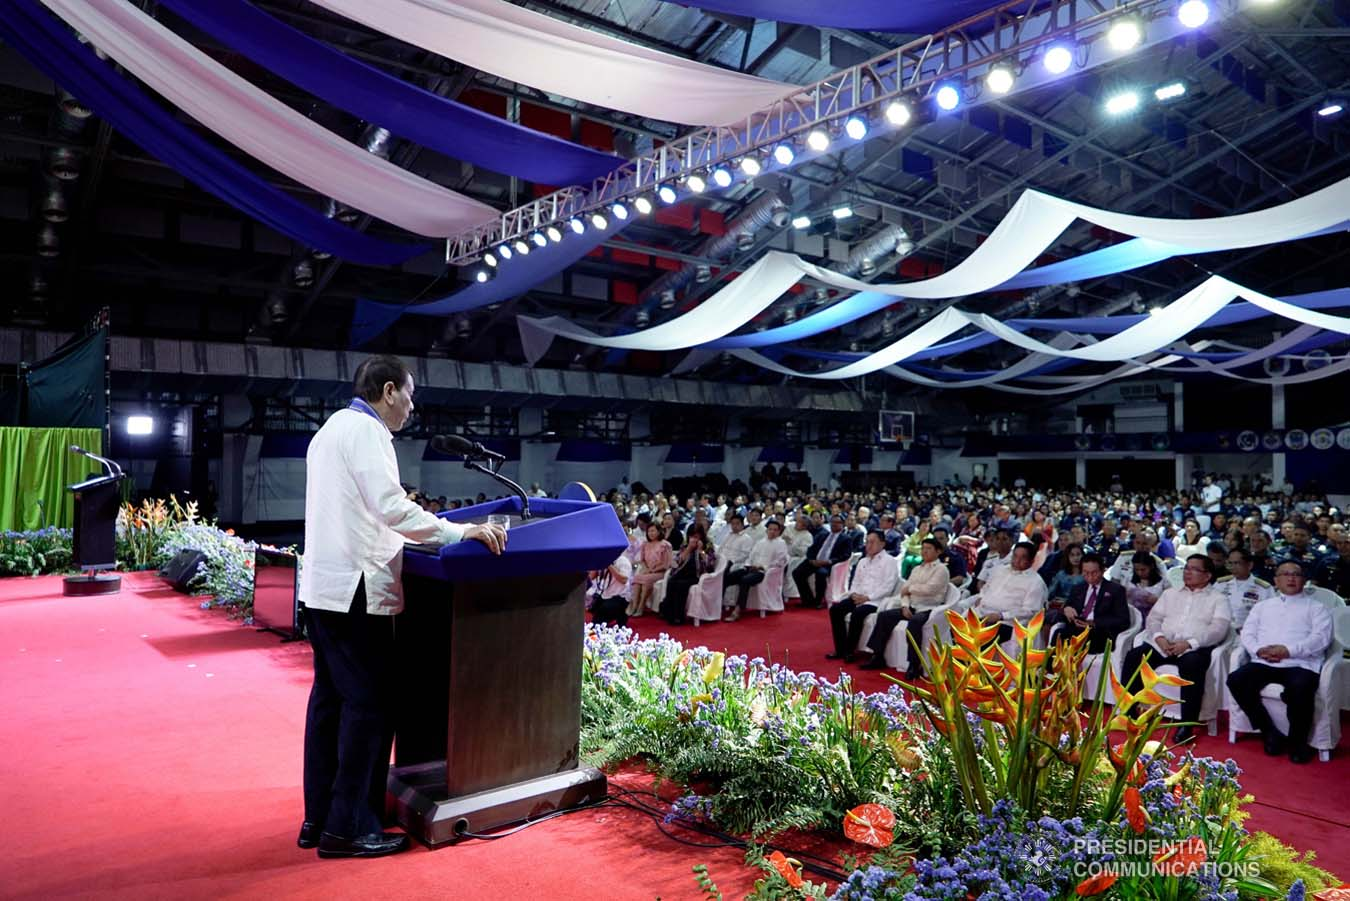 President Rodrigo Roa Duterte delivers a speech during the Philippine Air Force Change of Command Ceremony at the Col. Jesus Villamor Air Base in Pasay City on January 16, 2020. KING RODRIGUEZ/PRESIDENTIAL PHOTO